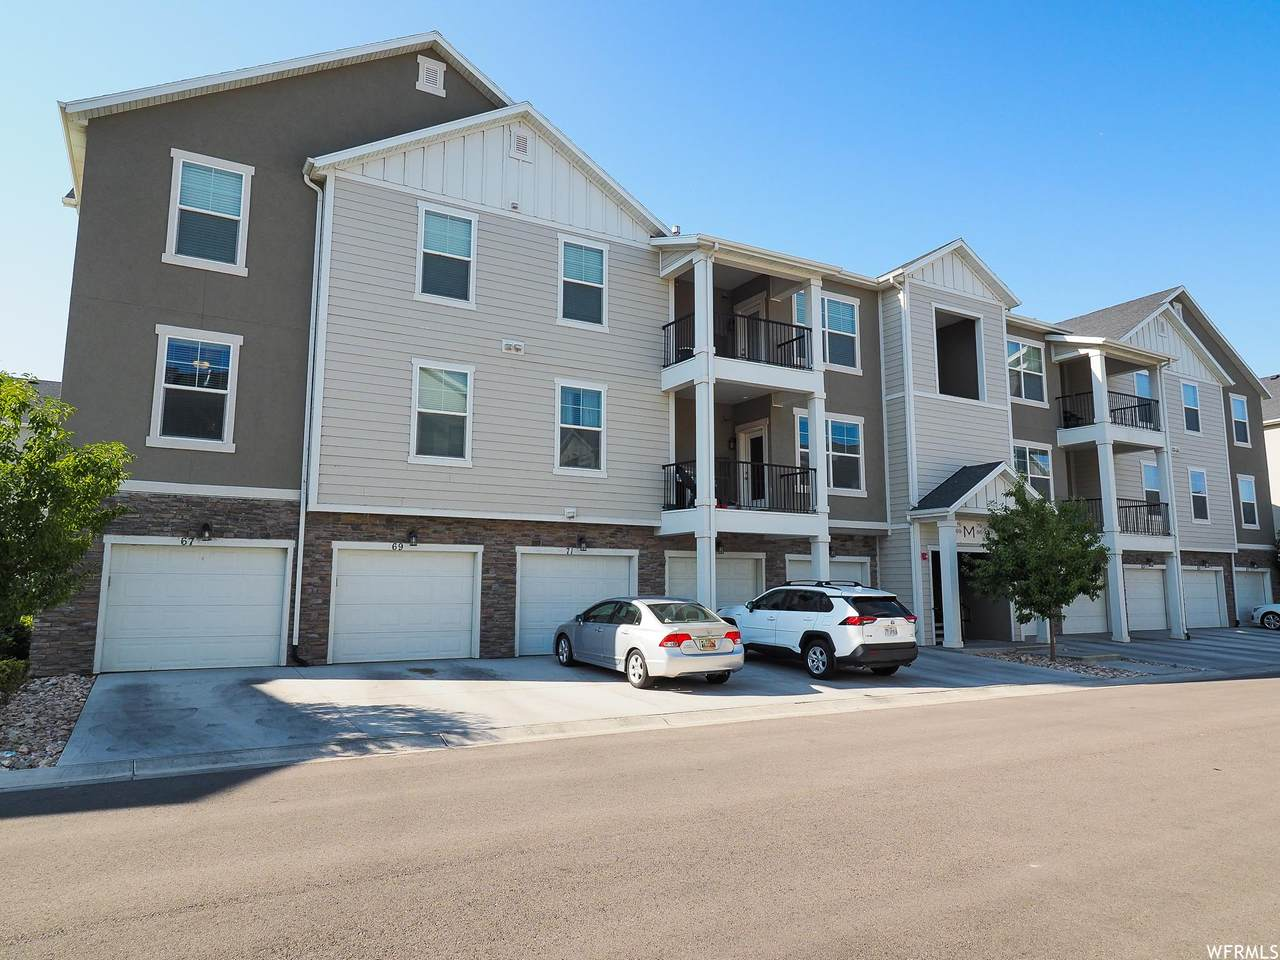 69 Silver Springs Dr - Photo 1